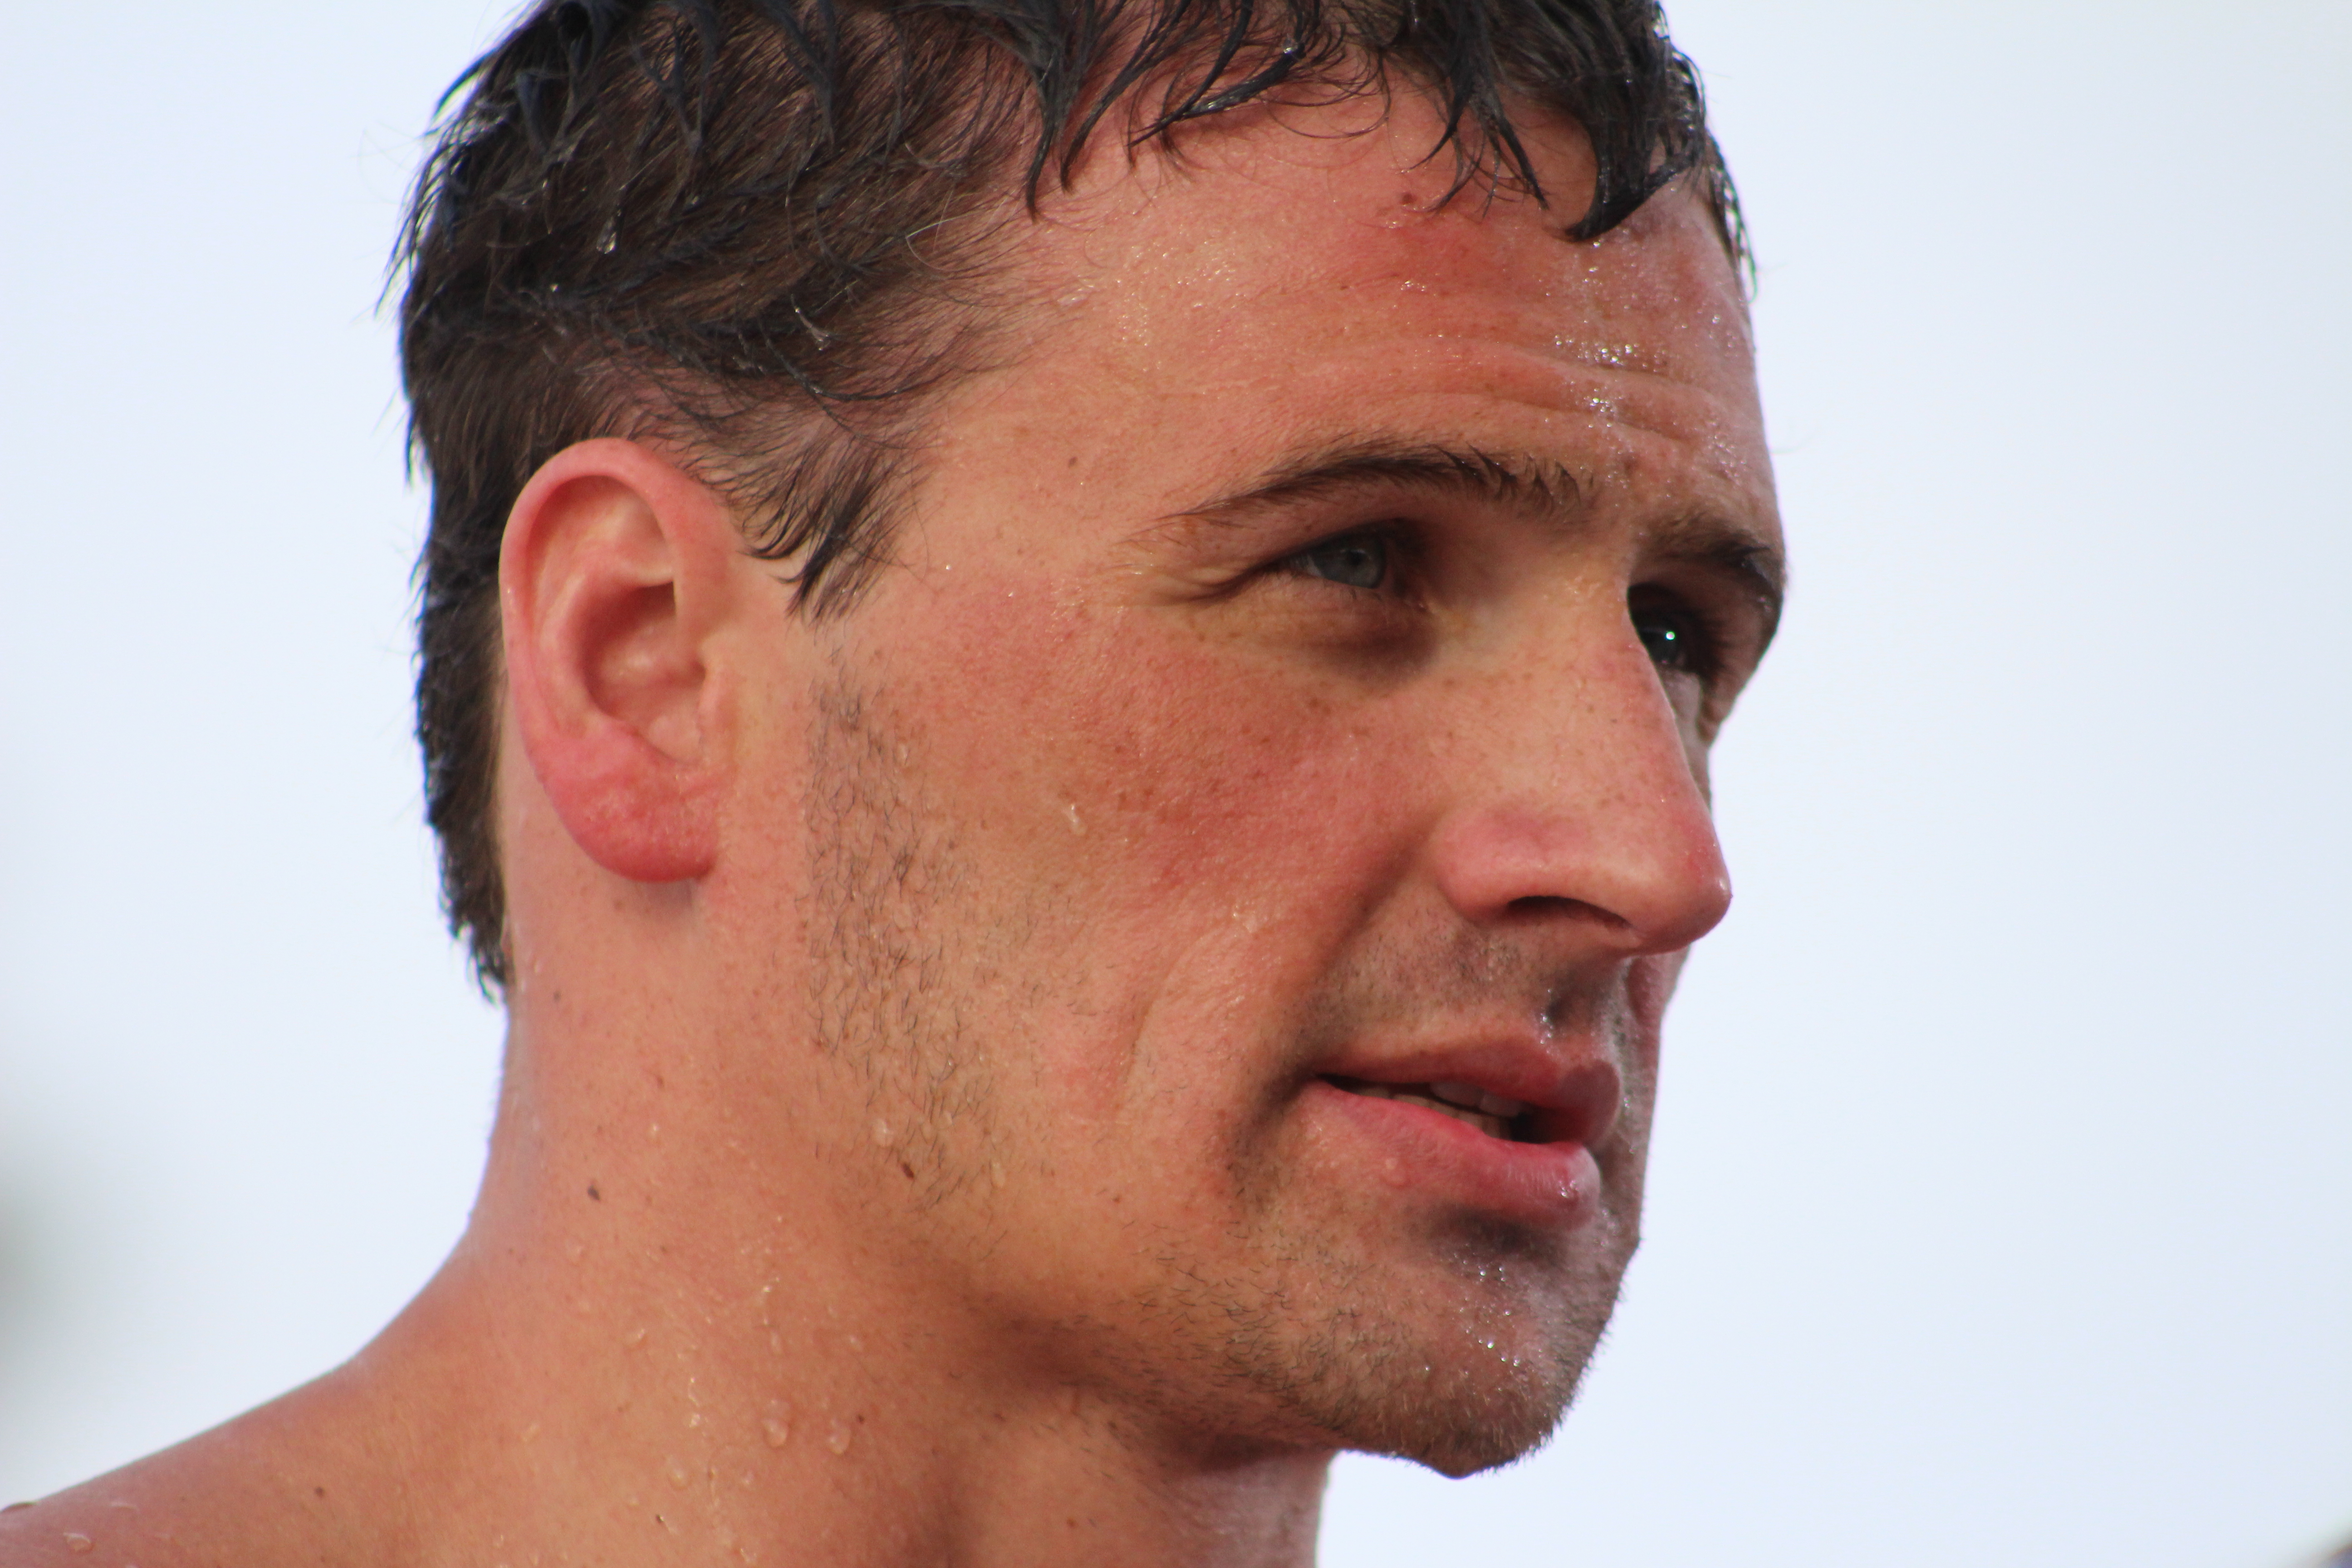 Video Interview Ryan Lochte Hungry After Sitting Out Due To Knee Injury